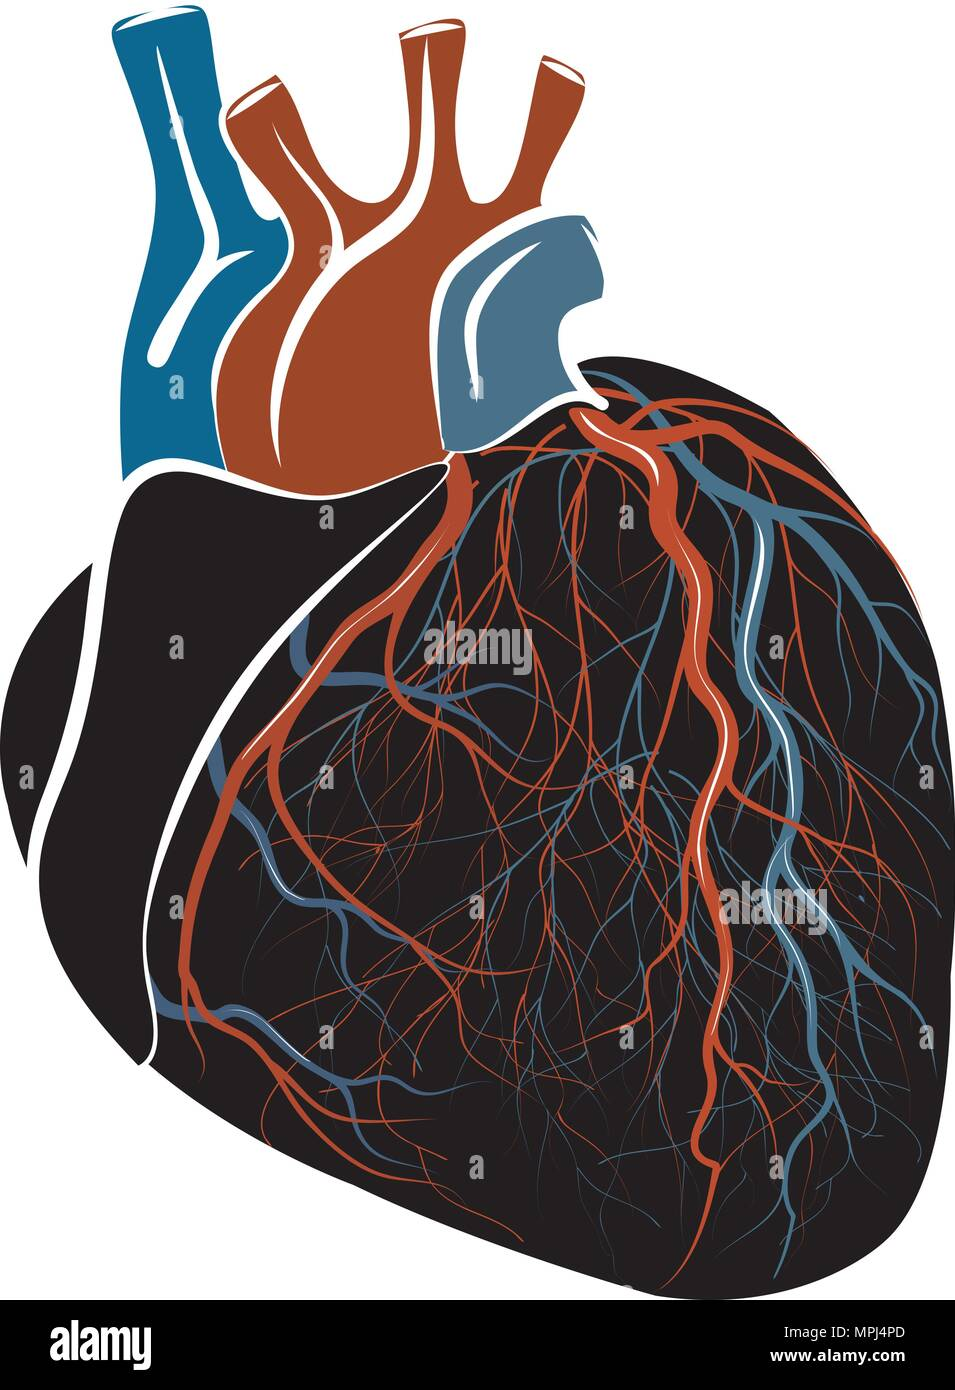 Left Ventricle Stockfotos & Left Ventricle Bilder - Seite 2 - Alamy